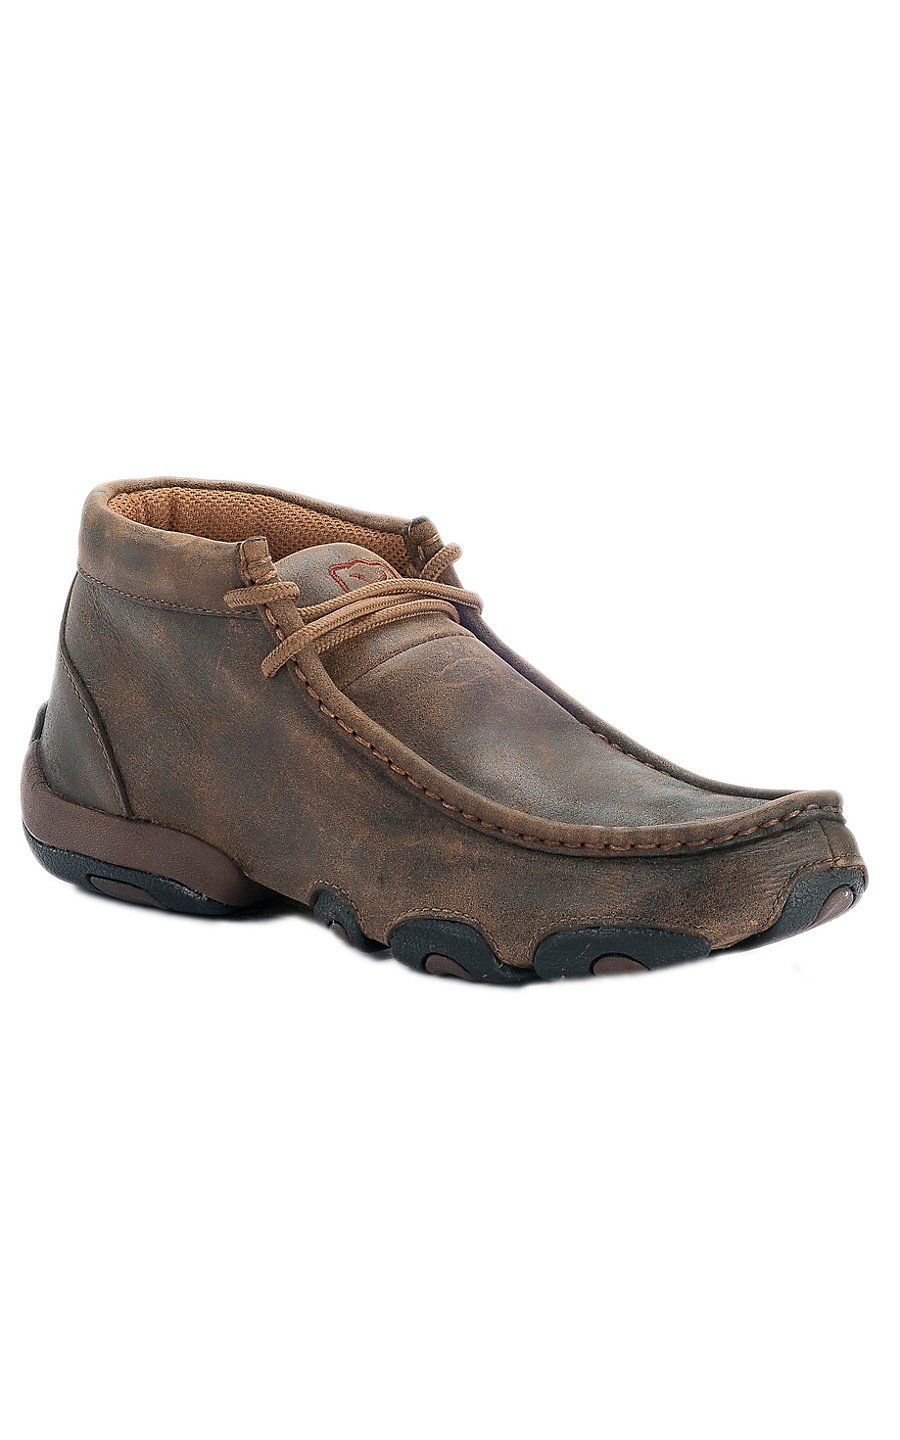 c2c95651902 Twisted X Ladies Bomber Brown Driving Moccasin Casual Shoe | Shoes ...